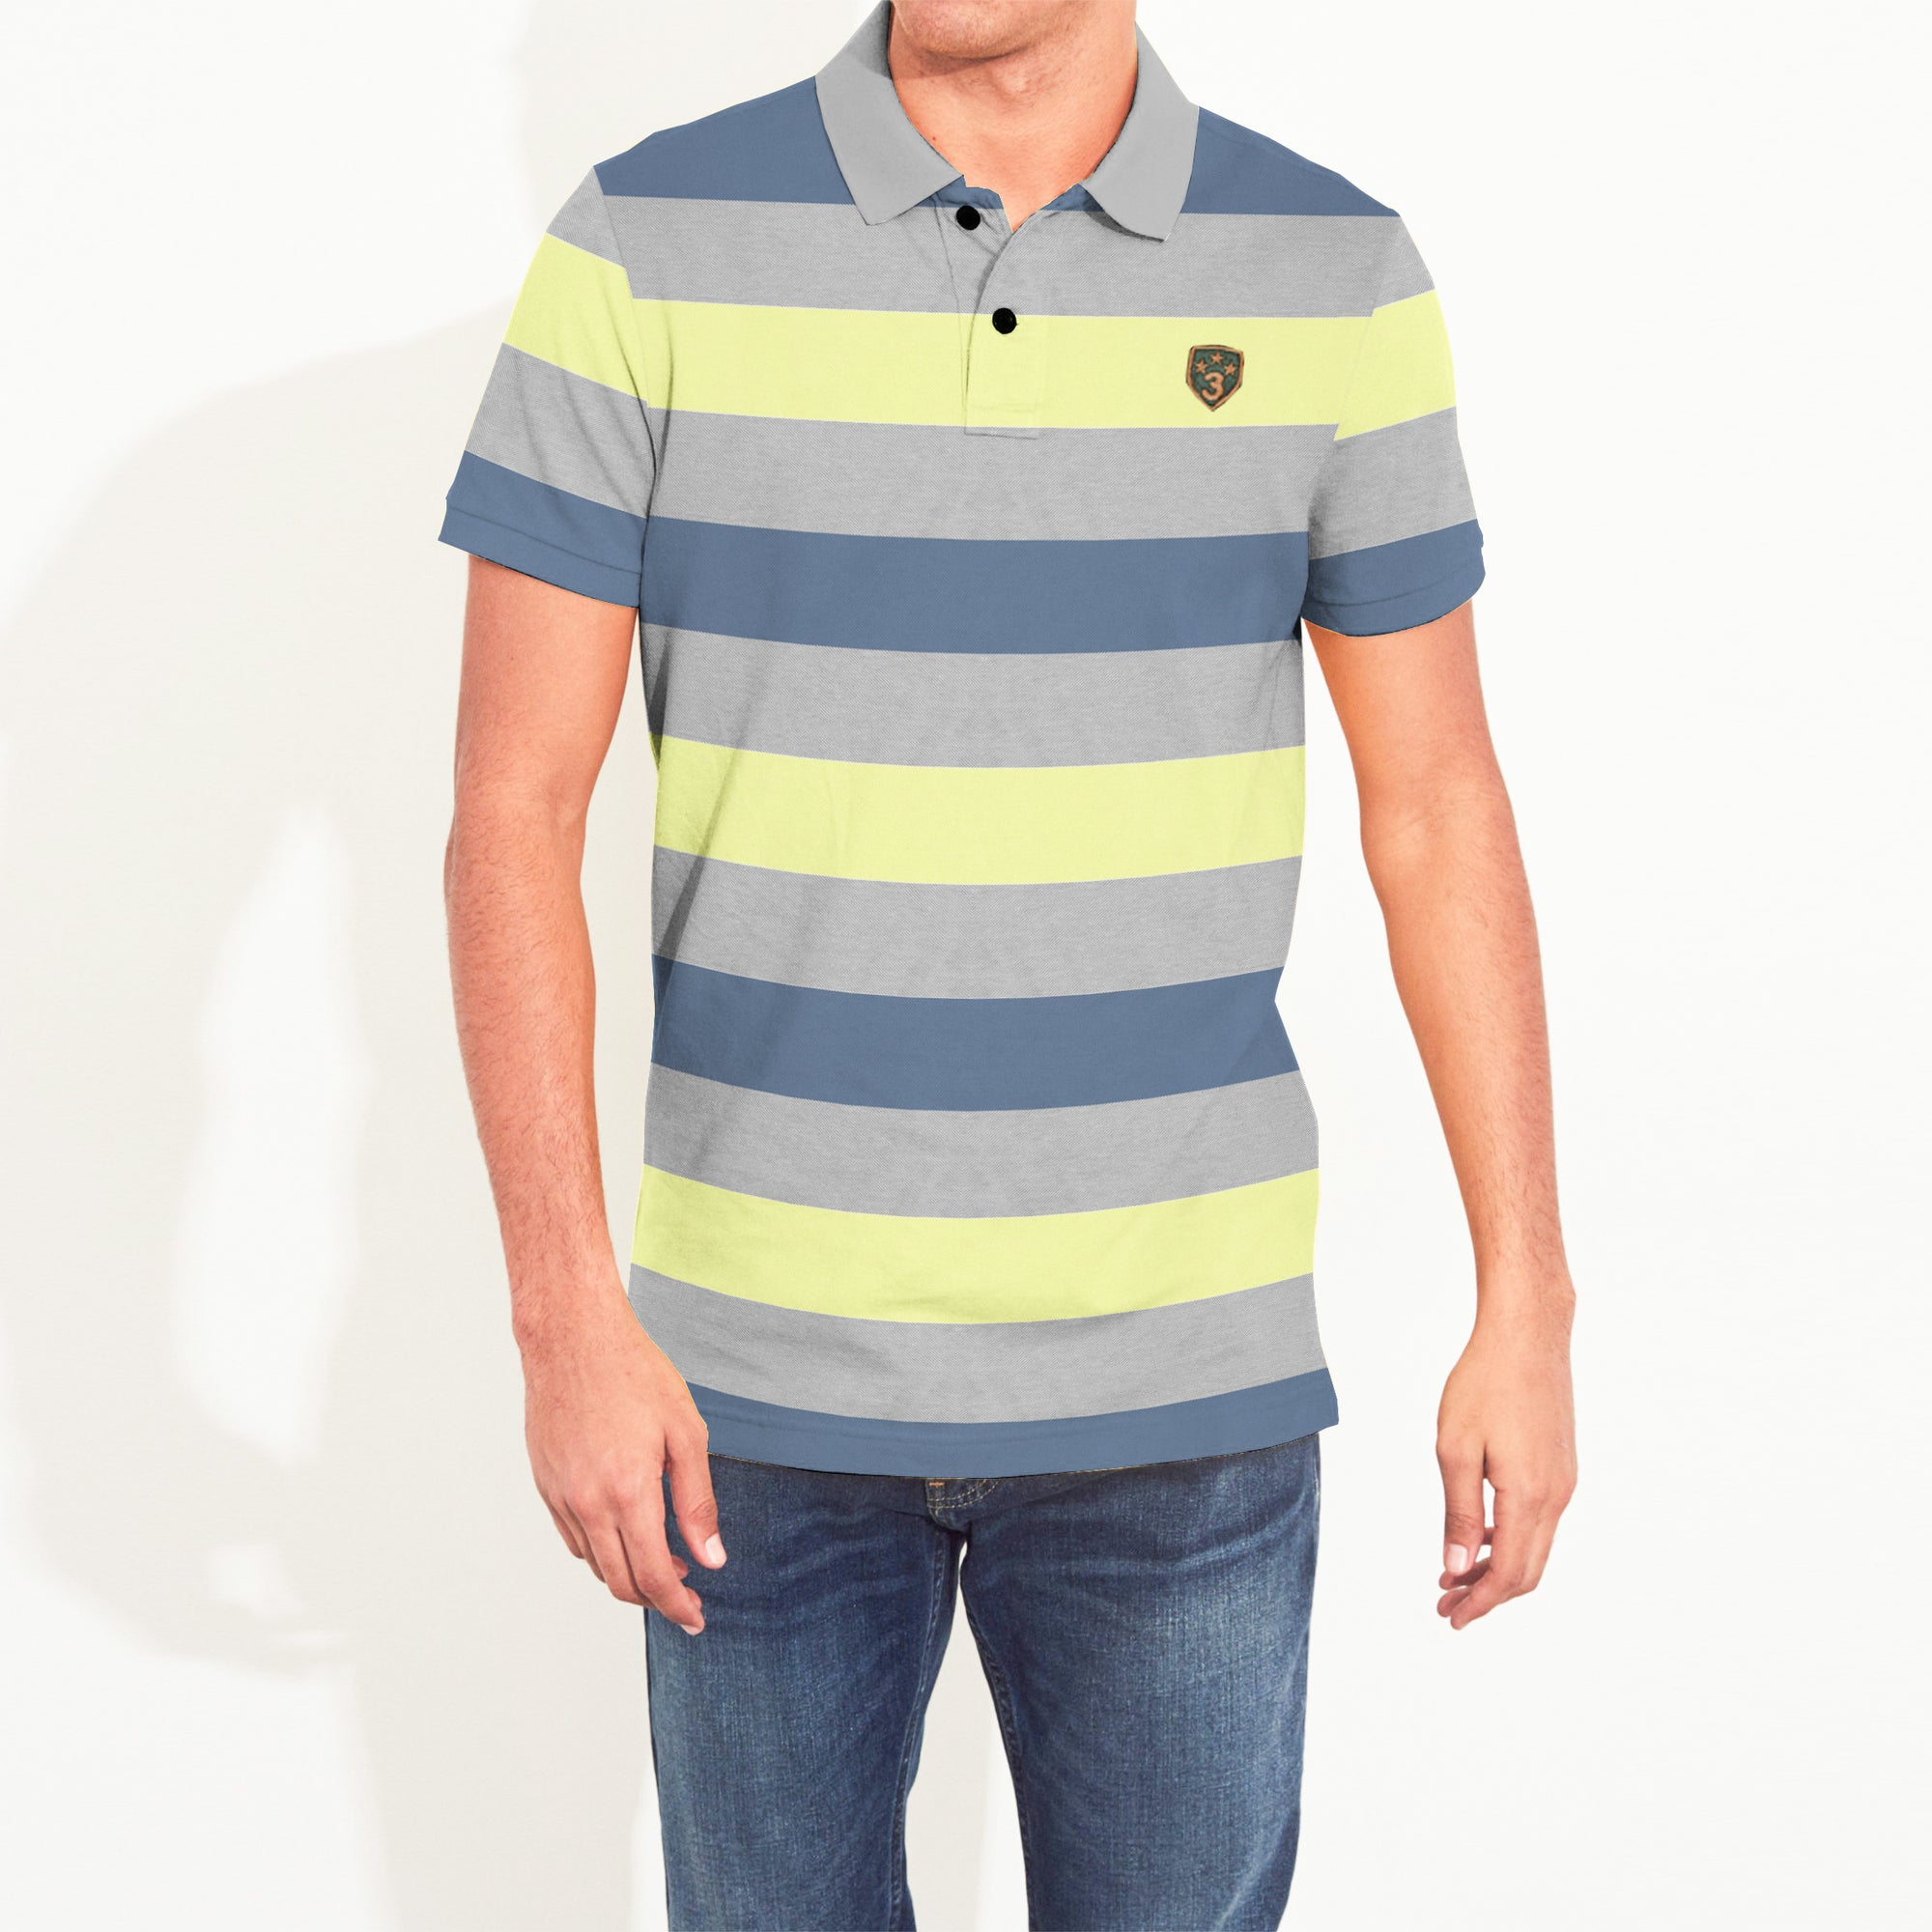 brandsego - Banana Republic Short Sleeve P.Q Polo Shirt For Men-Multi Striper-NA8115